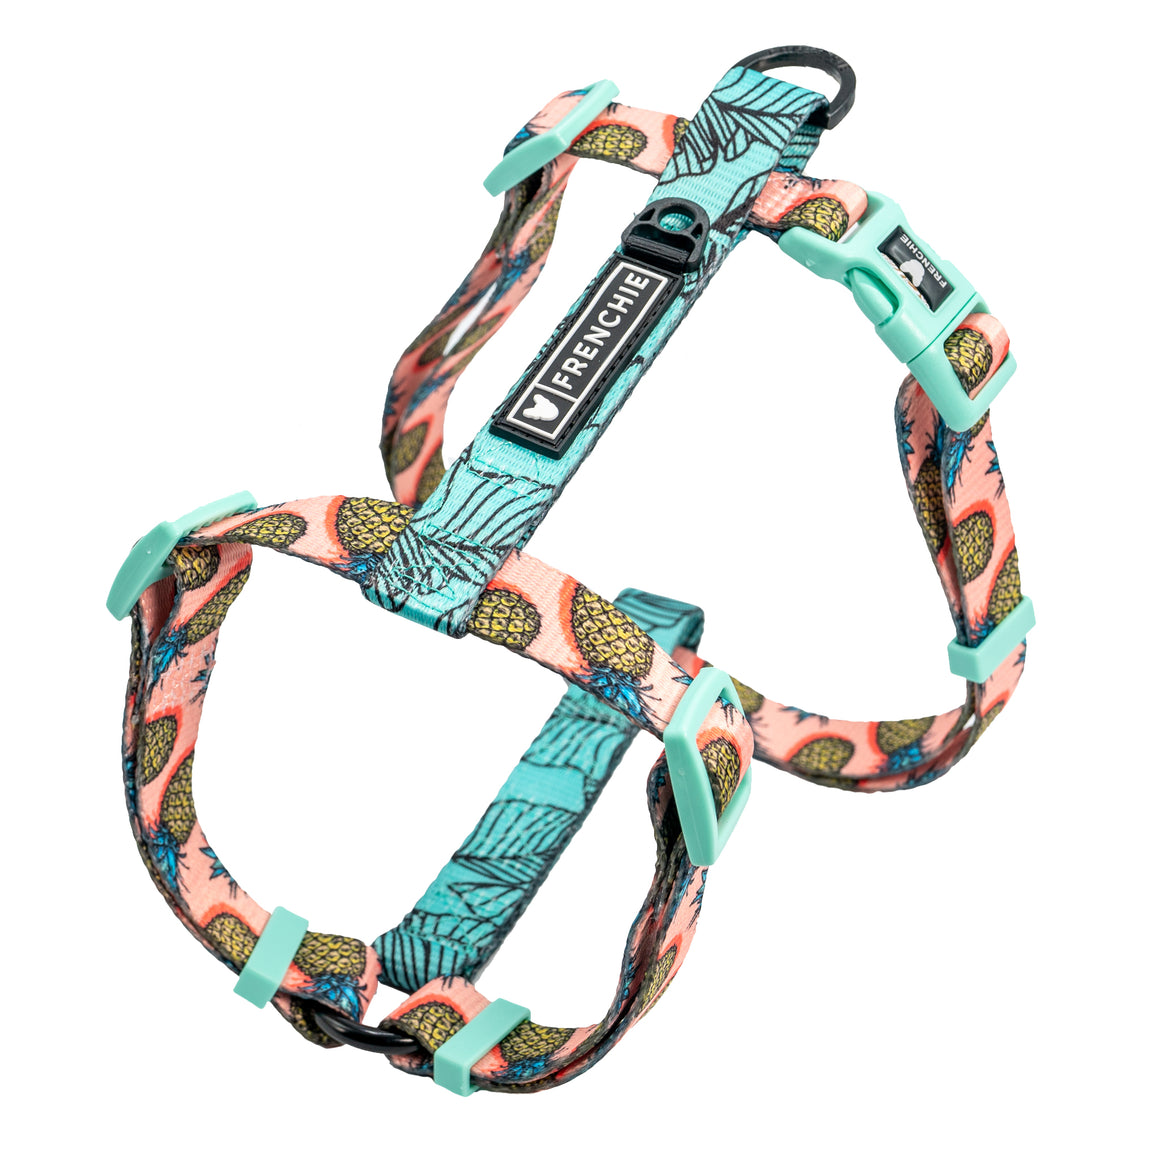 Frenchie Strap Harness - Fineapple